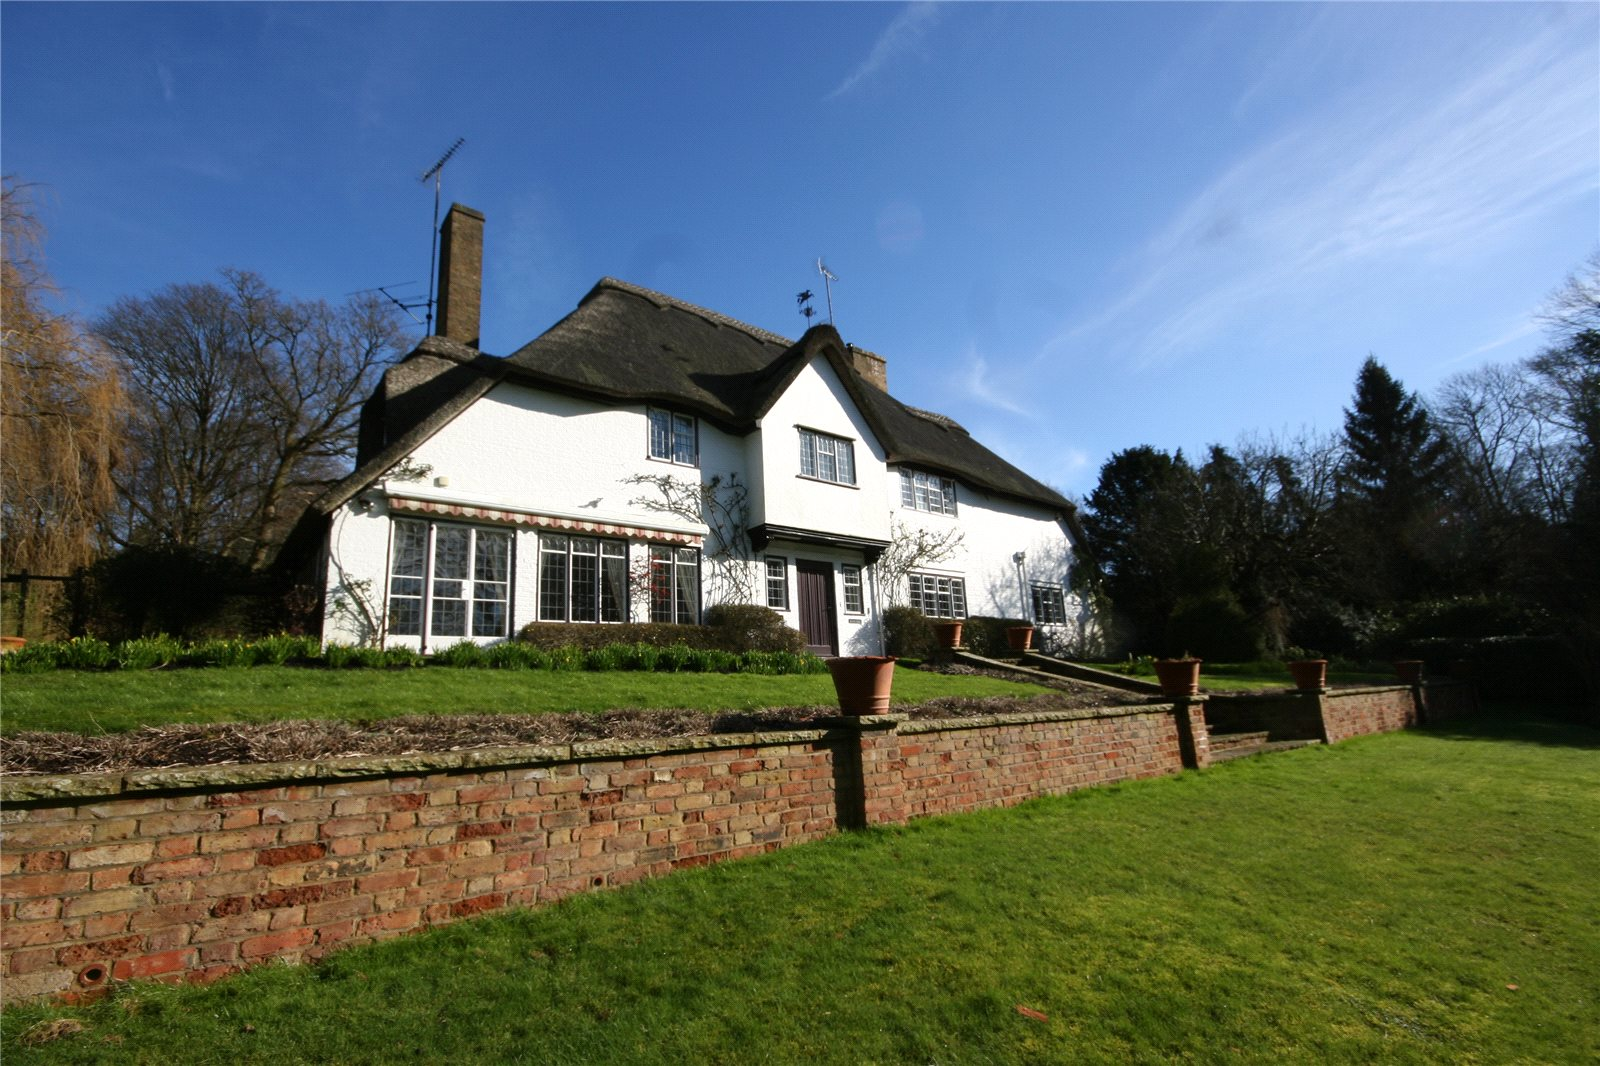 独户住宅 为 销售 在 Hedgerley Lane, Gerrards Cross, Buckinghamshire, SL9 Gerrards Cross, 英格兰